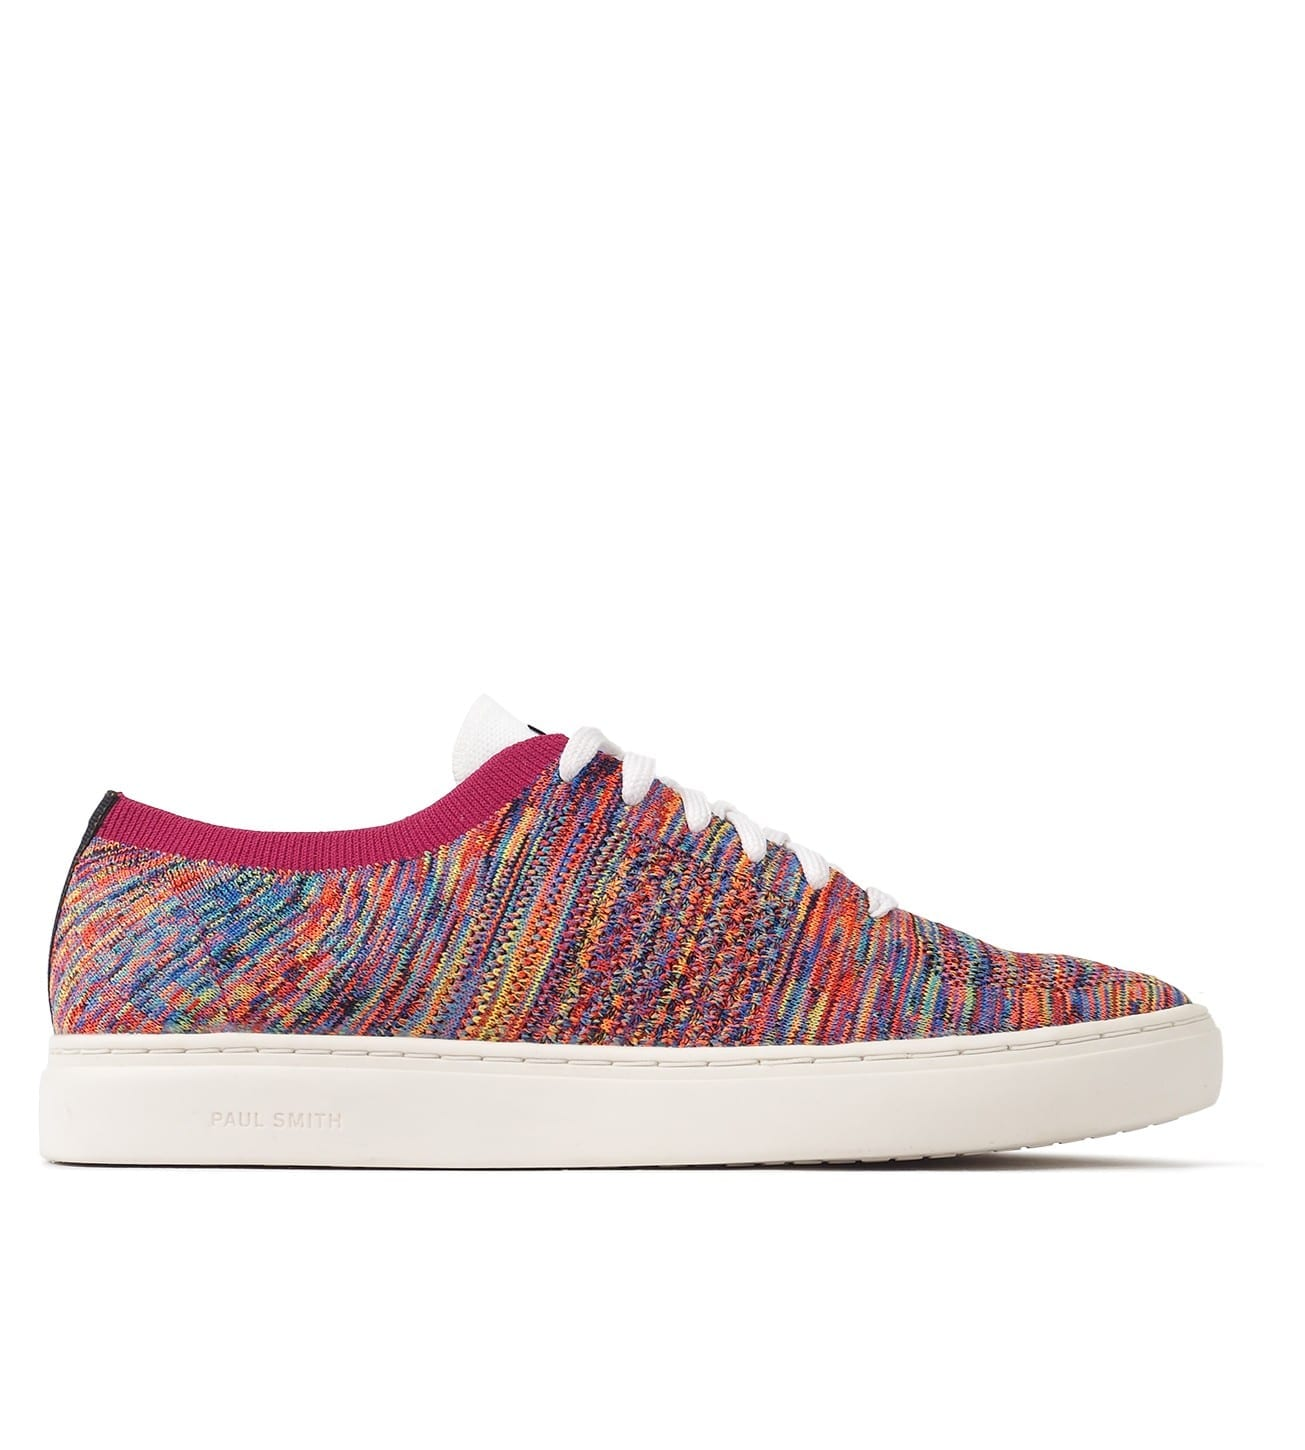 Image of   Mens shoe, Doyle multi knitted